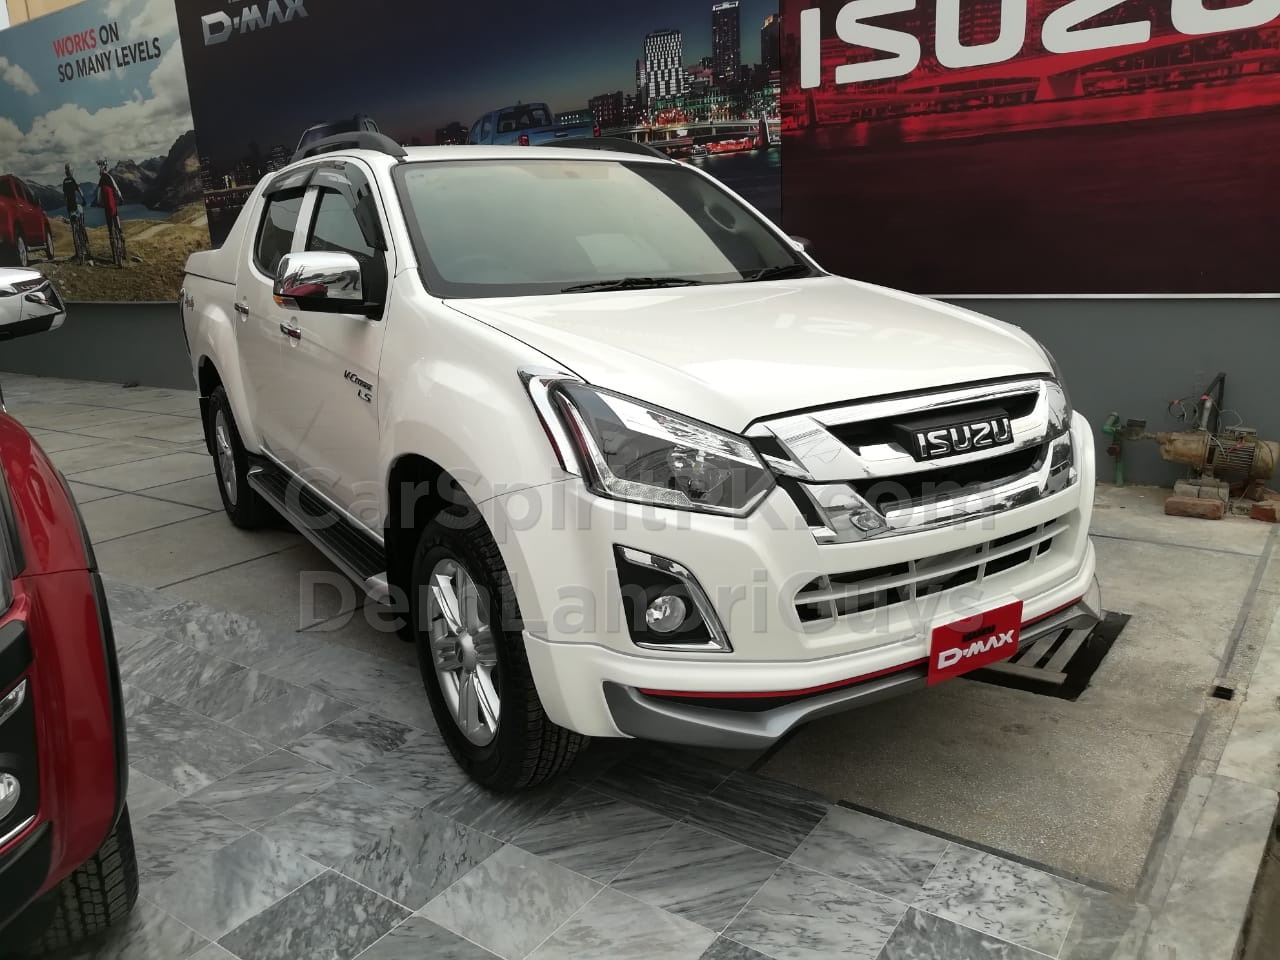 Isuzu D-MAX Recorded Lowest-Ever Sales in November 2